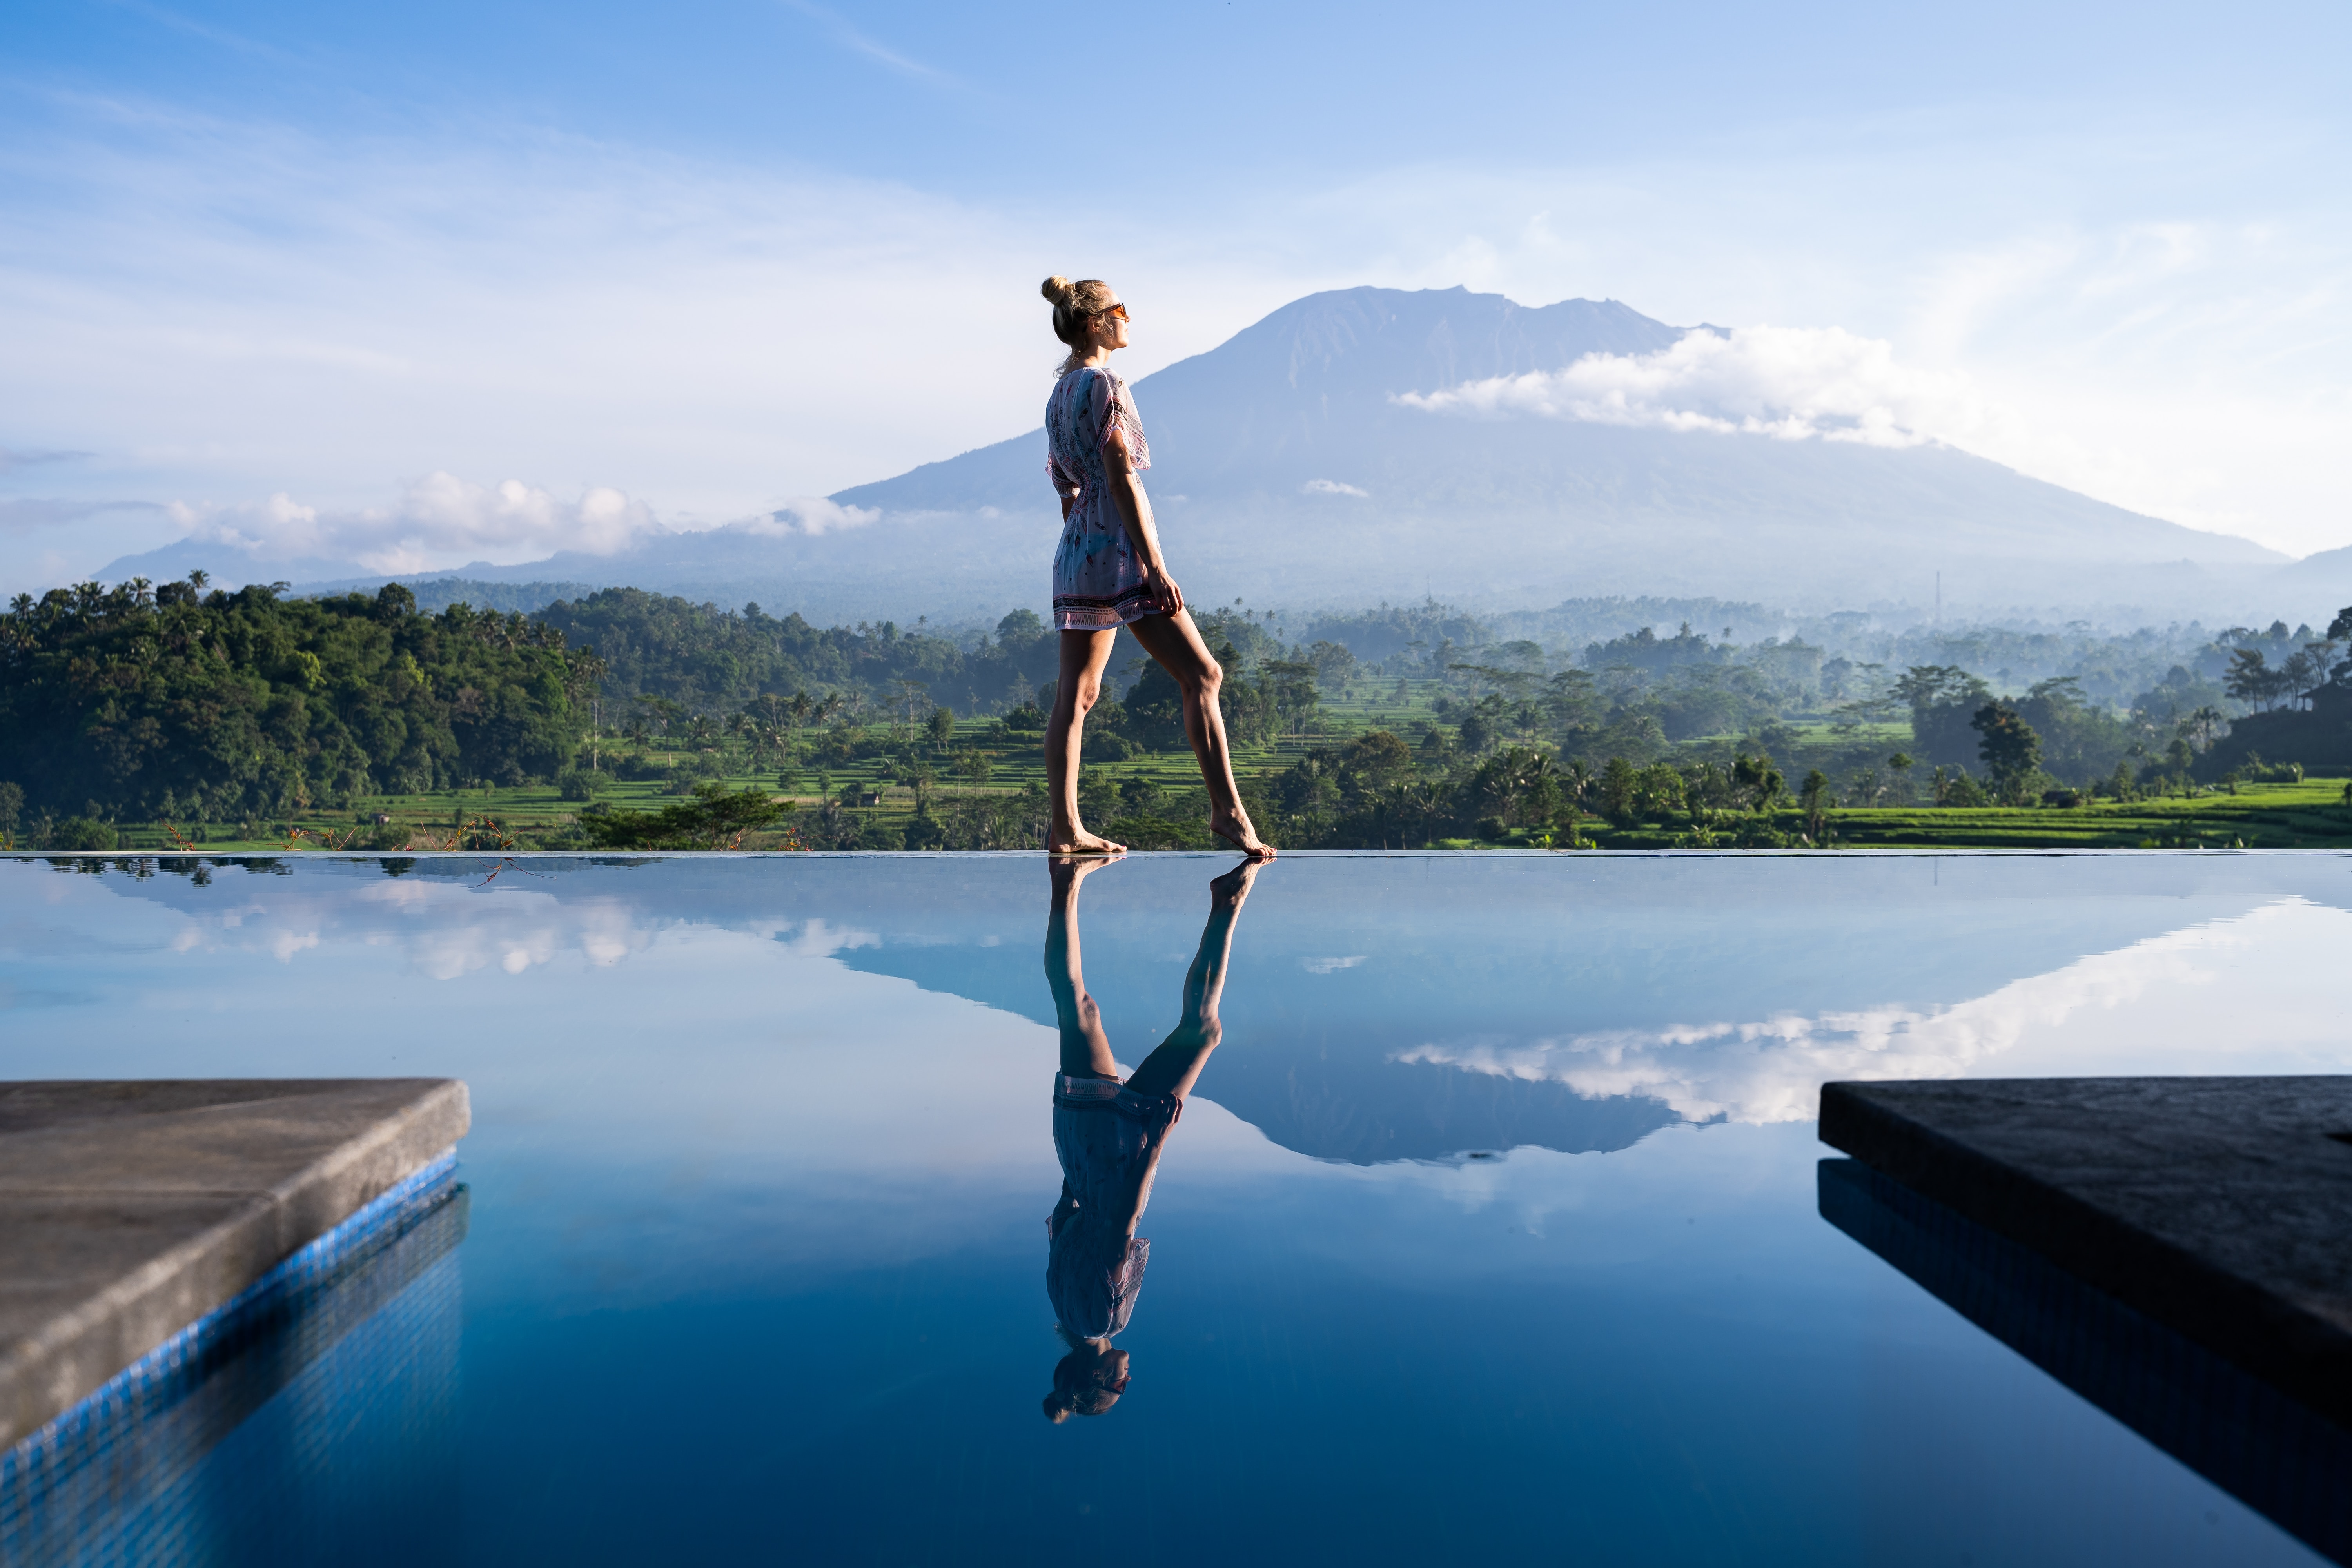 A woman standing in front of Mount Agung, Sidemen, Bali, Indonesia